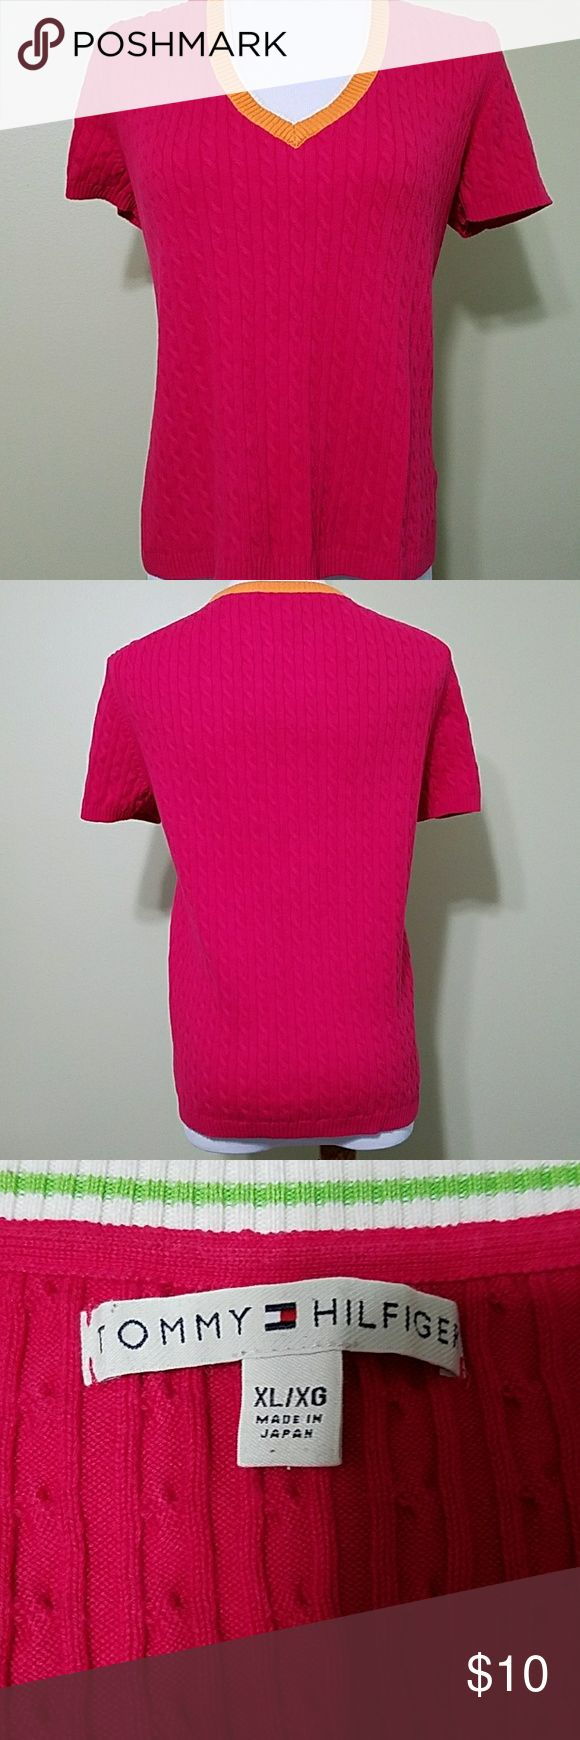 Tommy Hilfiger v-neck hot pink sweater Tommy Hilfiger v-neck hot pink sweater with orange and white trim around neck line. In great used condition.  Length is about 23 inches.  Bust is about 40 inches.  Made of 87% cotton, 11% nylon, and 2% spandex. Tommy Hilfiger Sweaters V-Necks